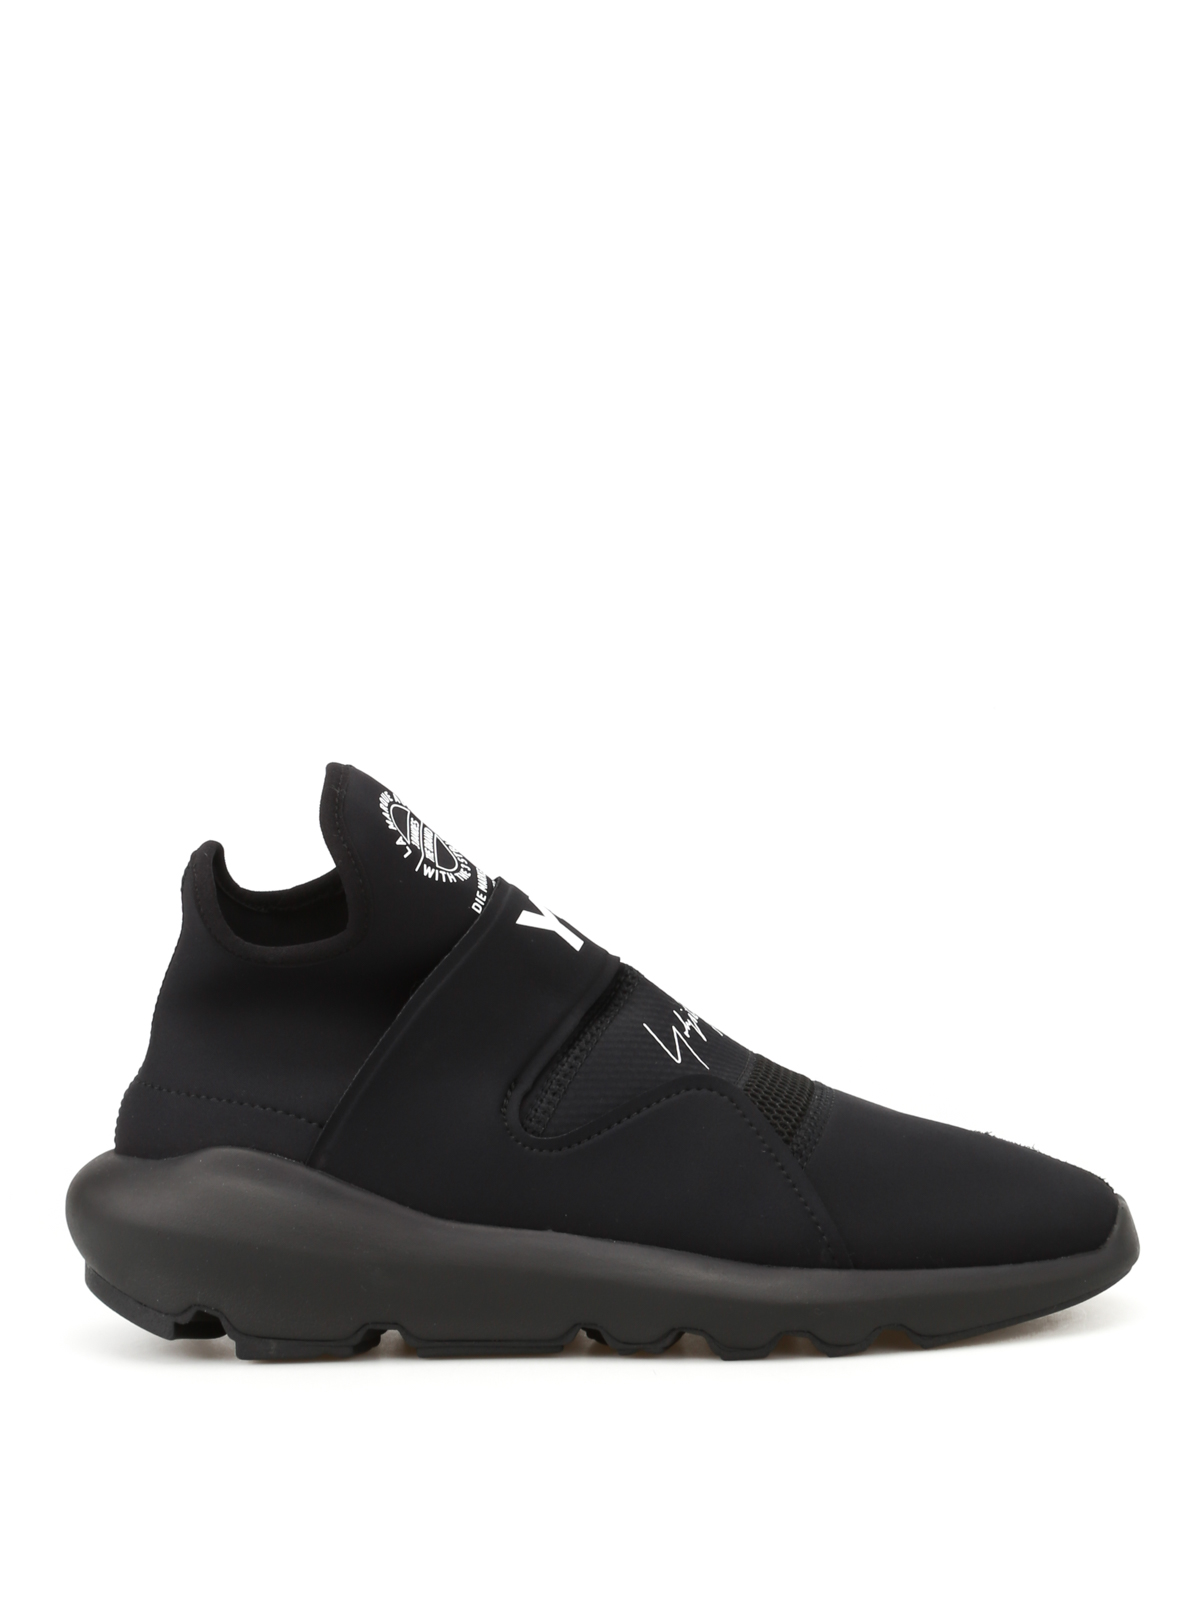 d25f47681 Adidas Y-3 - Suberou black slip-on sneakers - trainers - AC7201